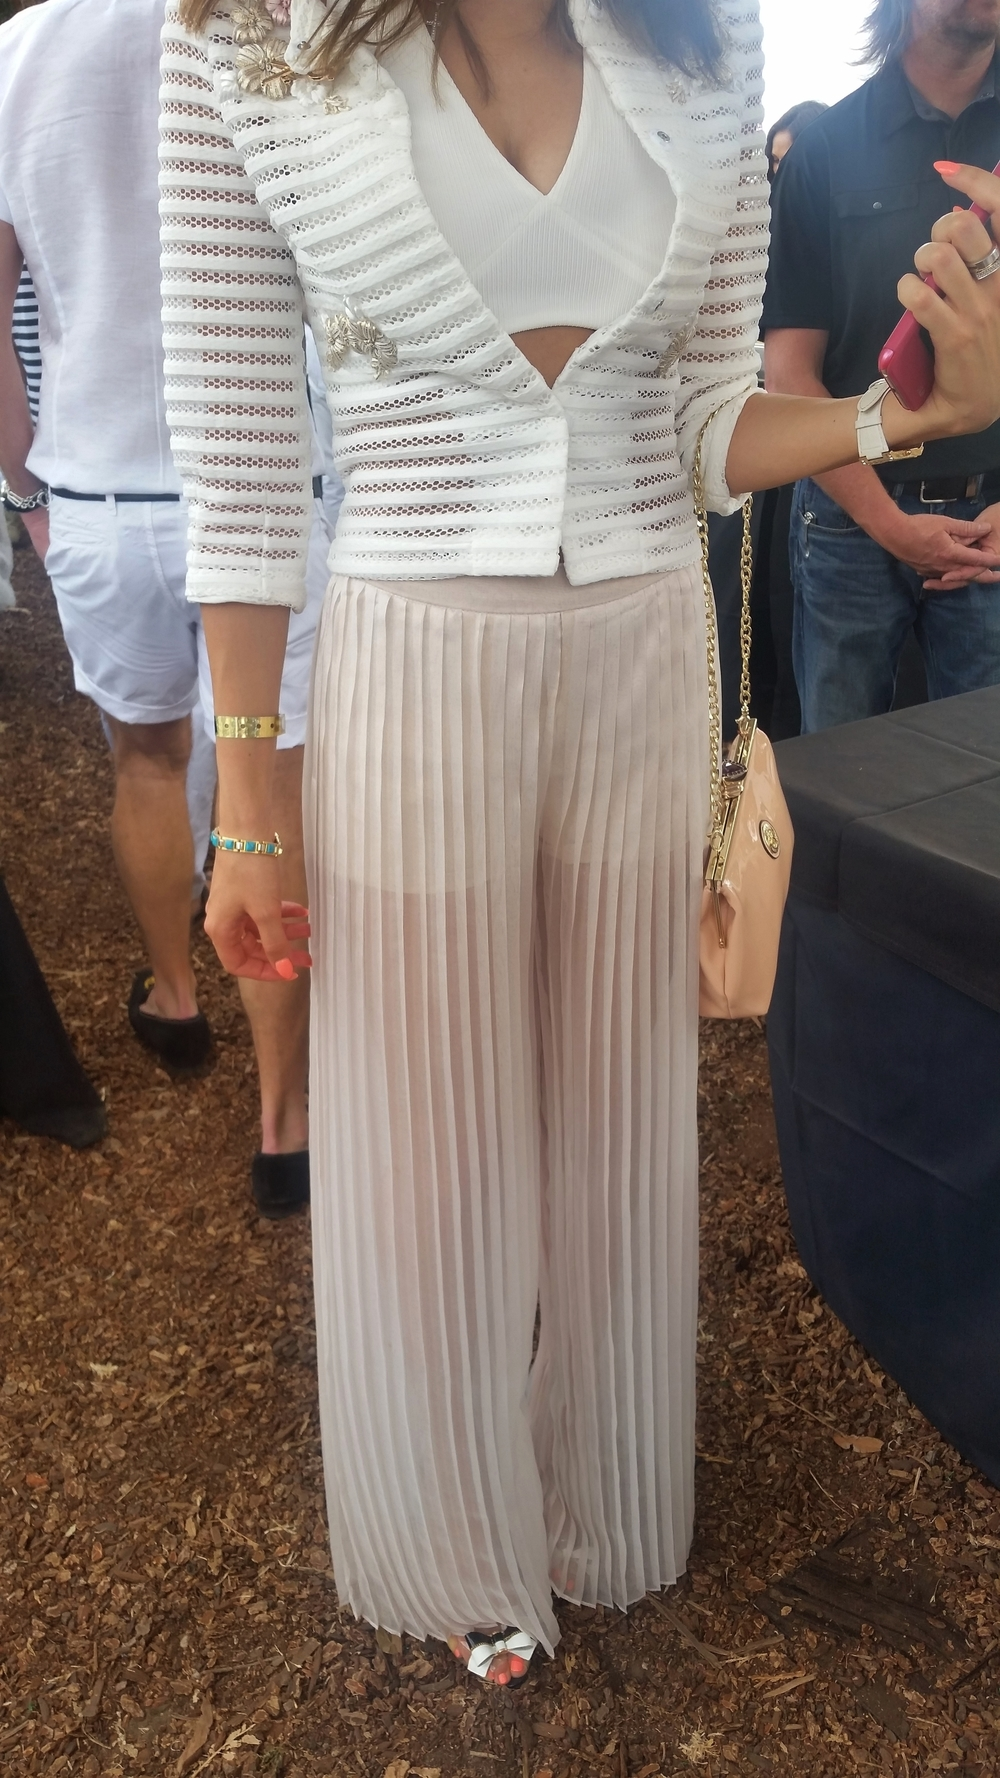 Polo+Event+-+Styles+4